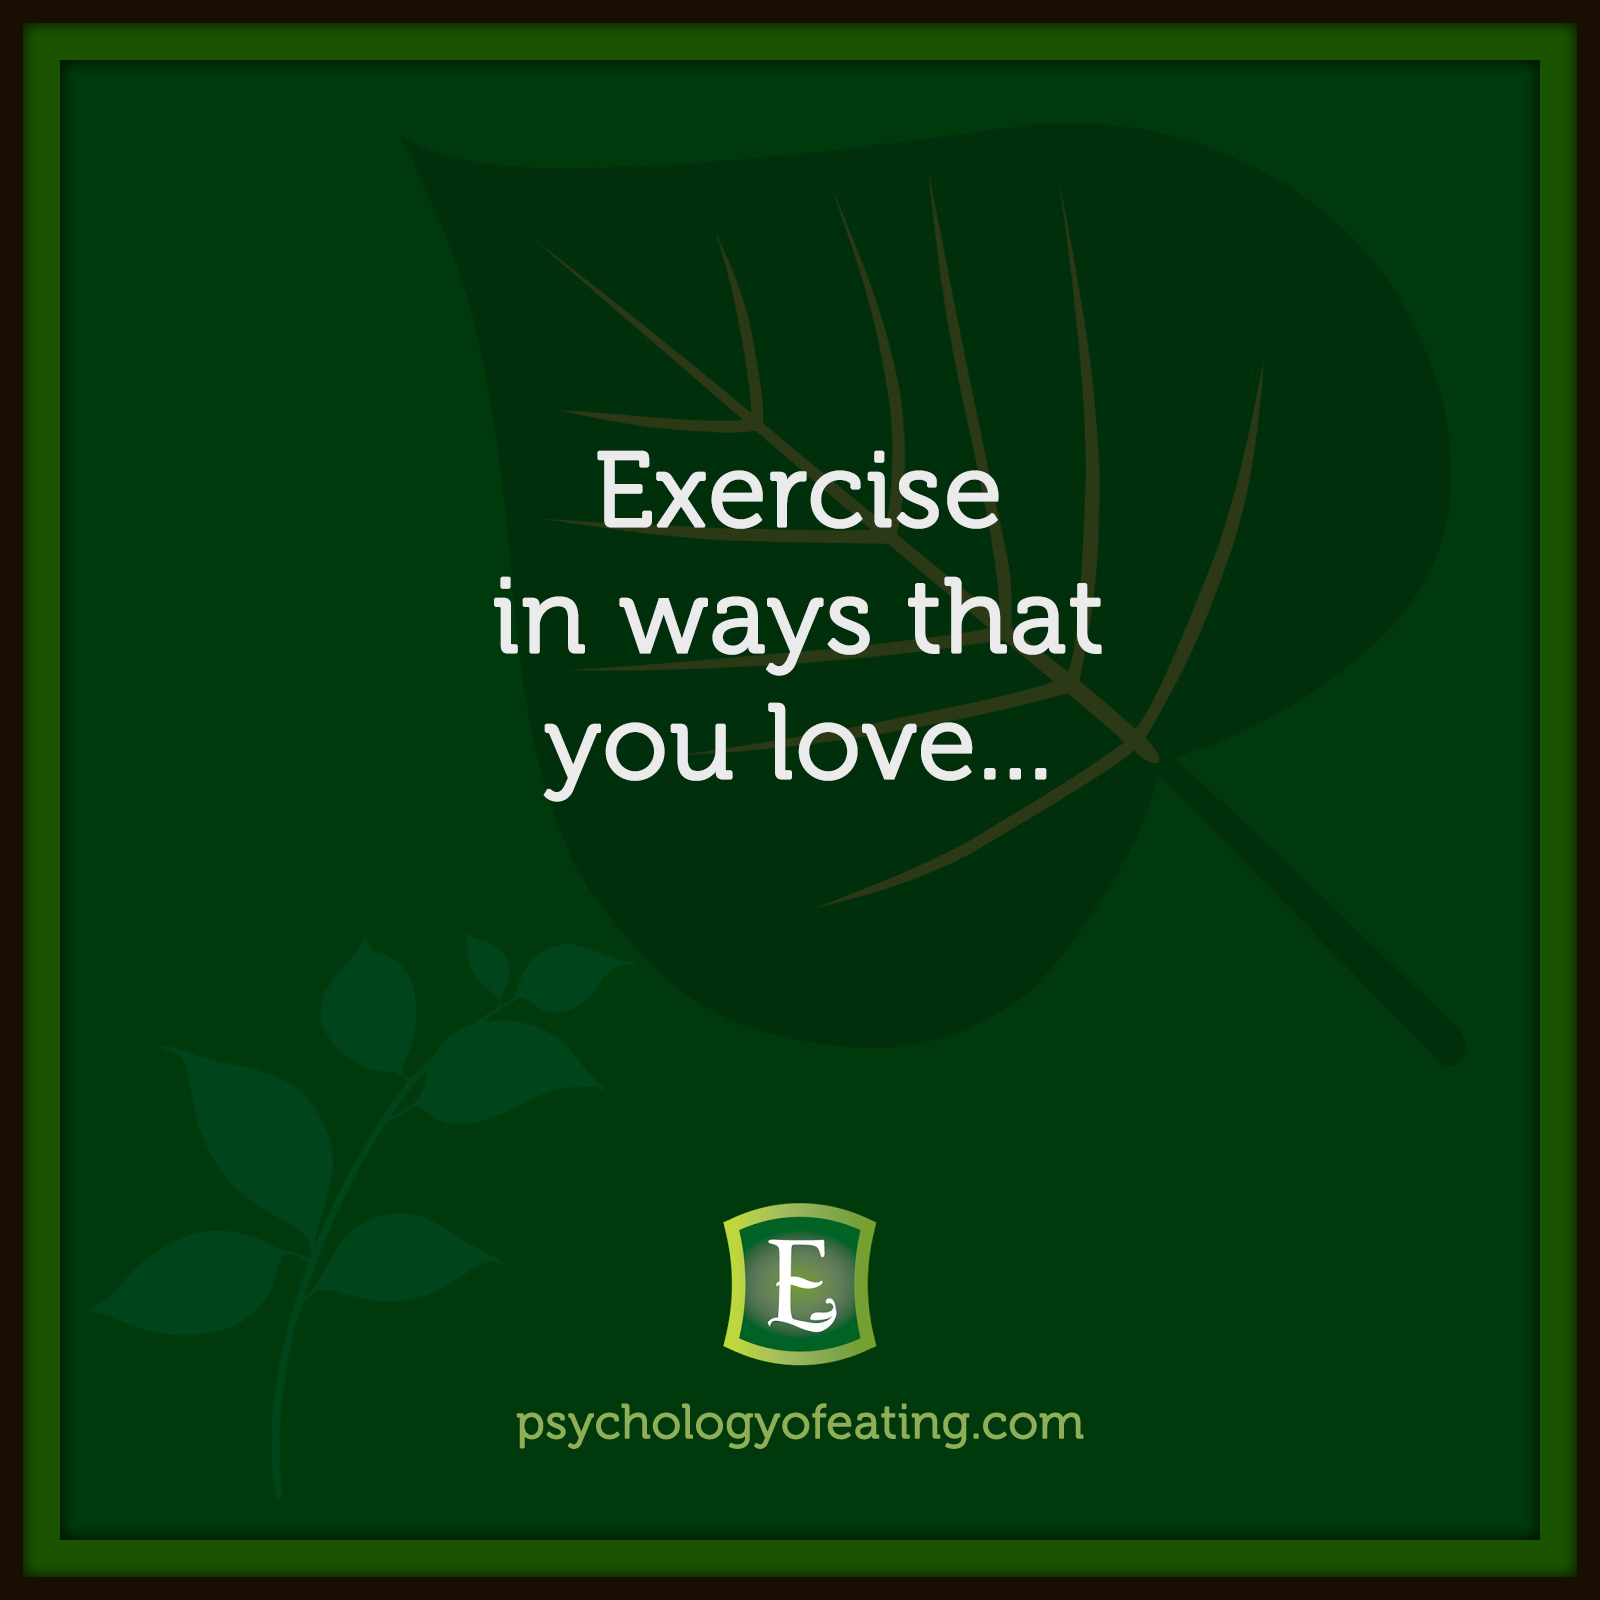 Exercise in ways that you love… #health #nutrition #eatingpsychology #IPE